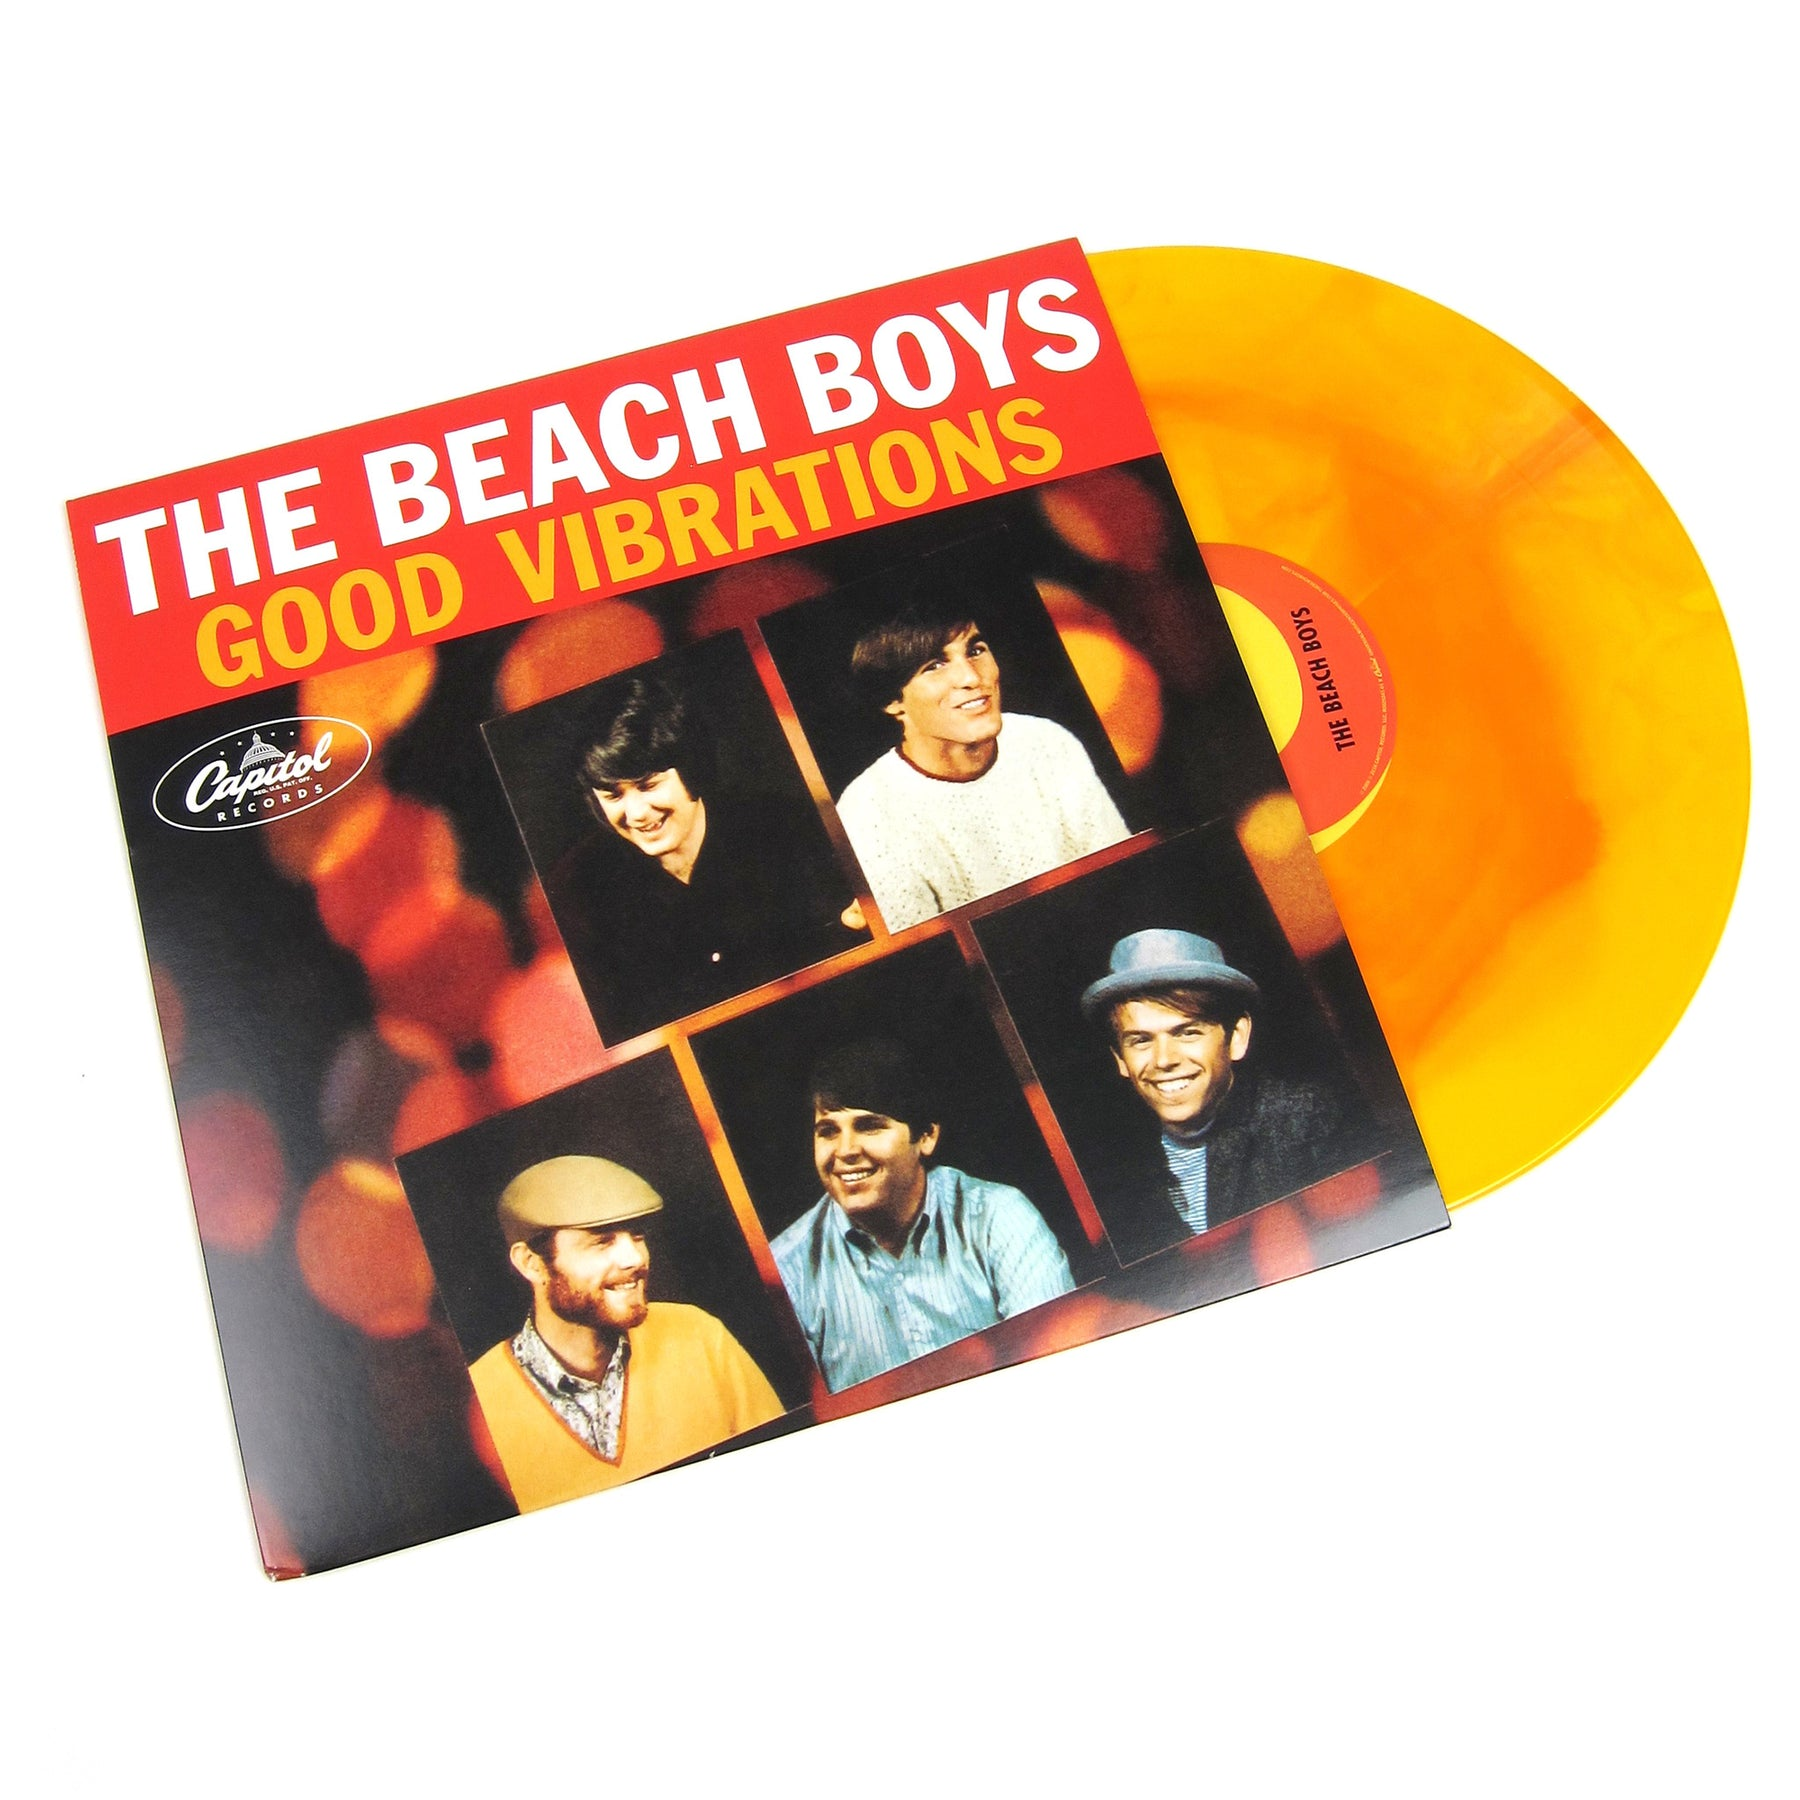 1ebfb9fd The Beach Boys: Good Vibrations (Colored Vinyl) Vinyl 12 ...